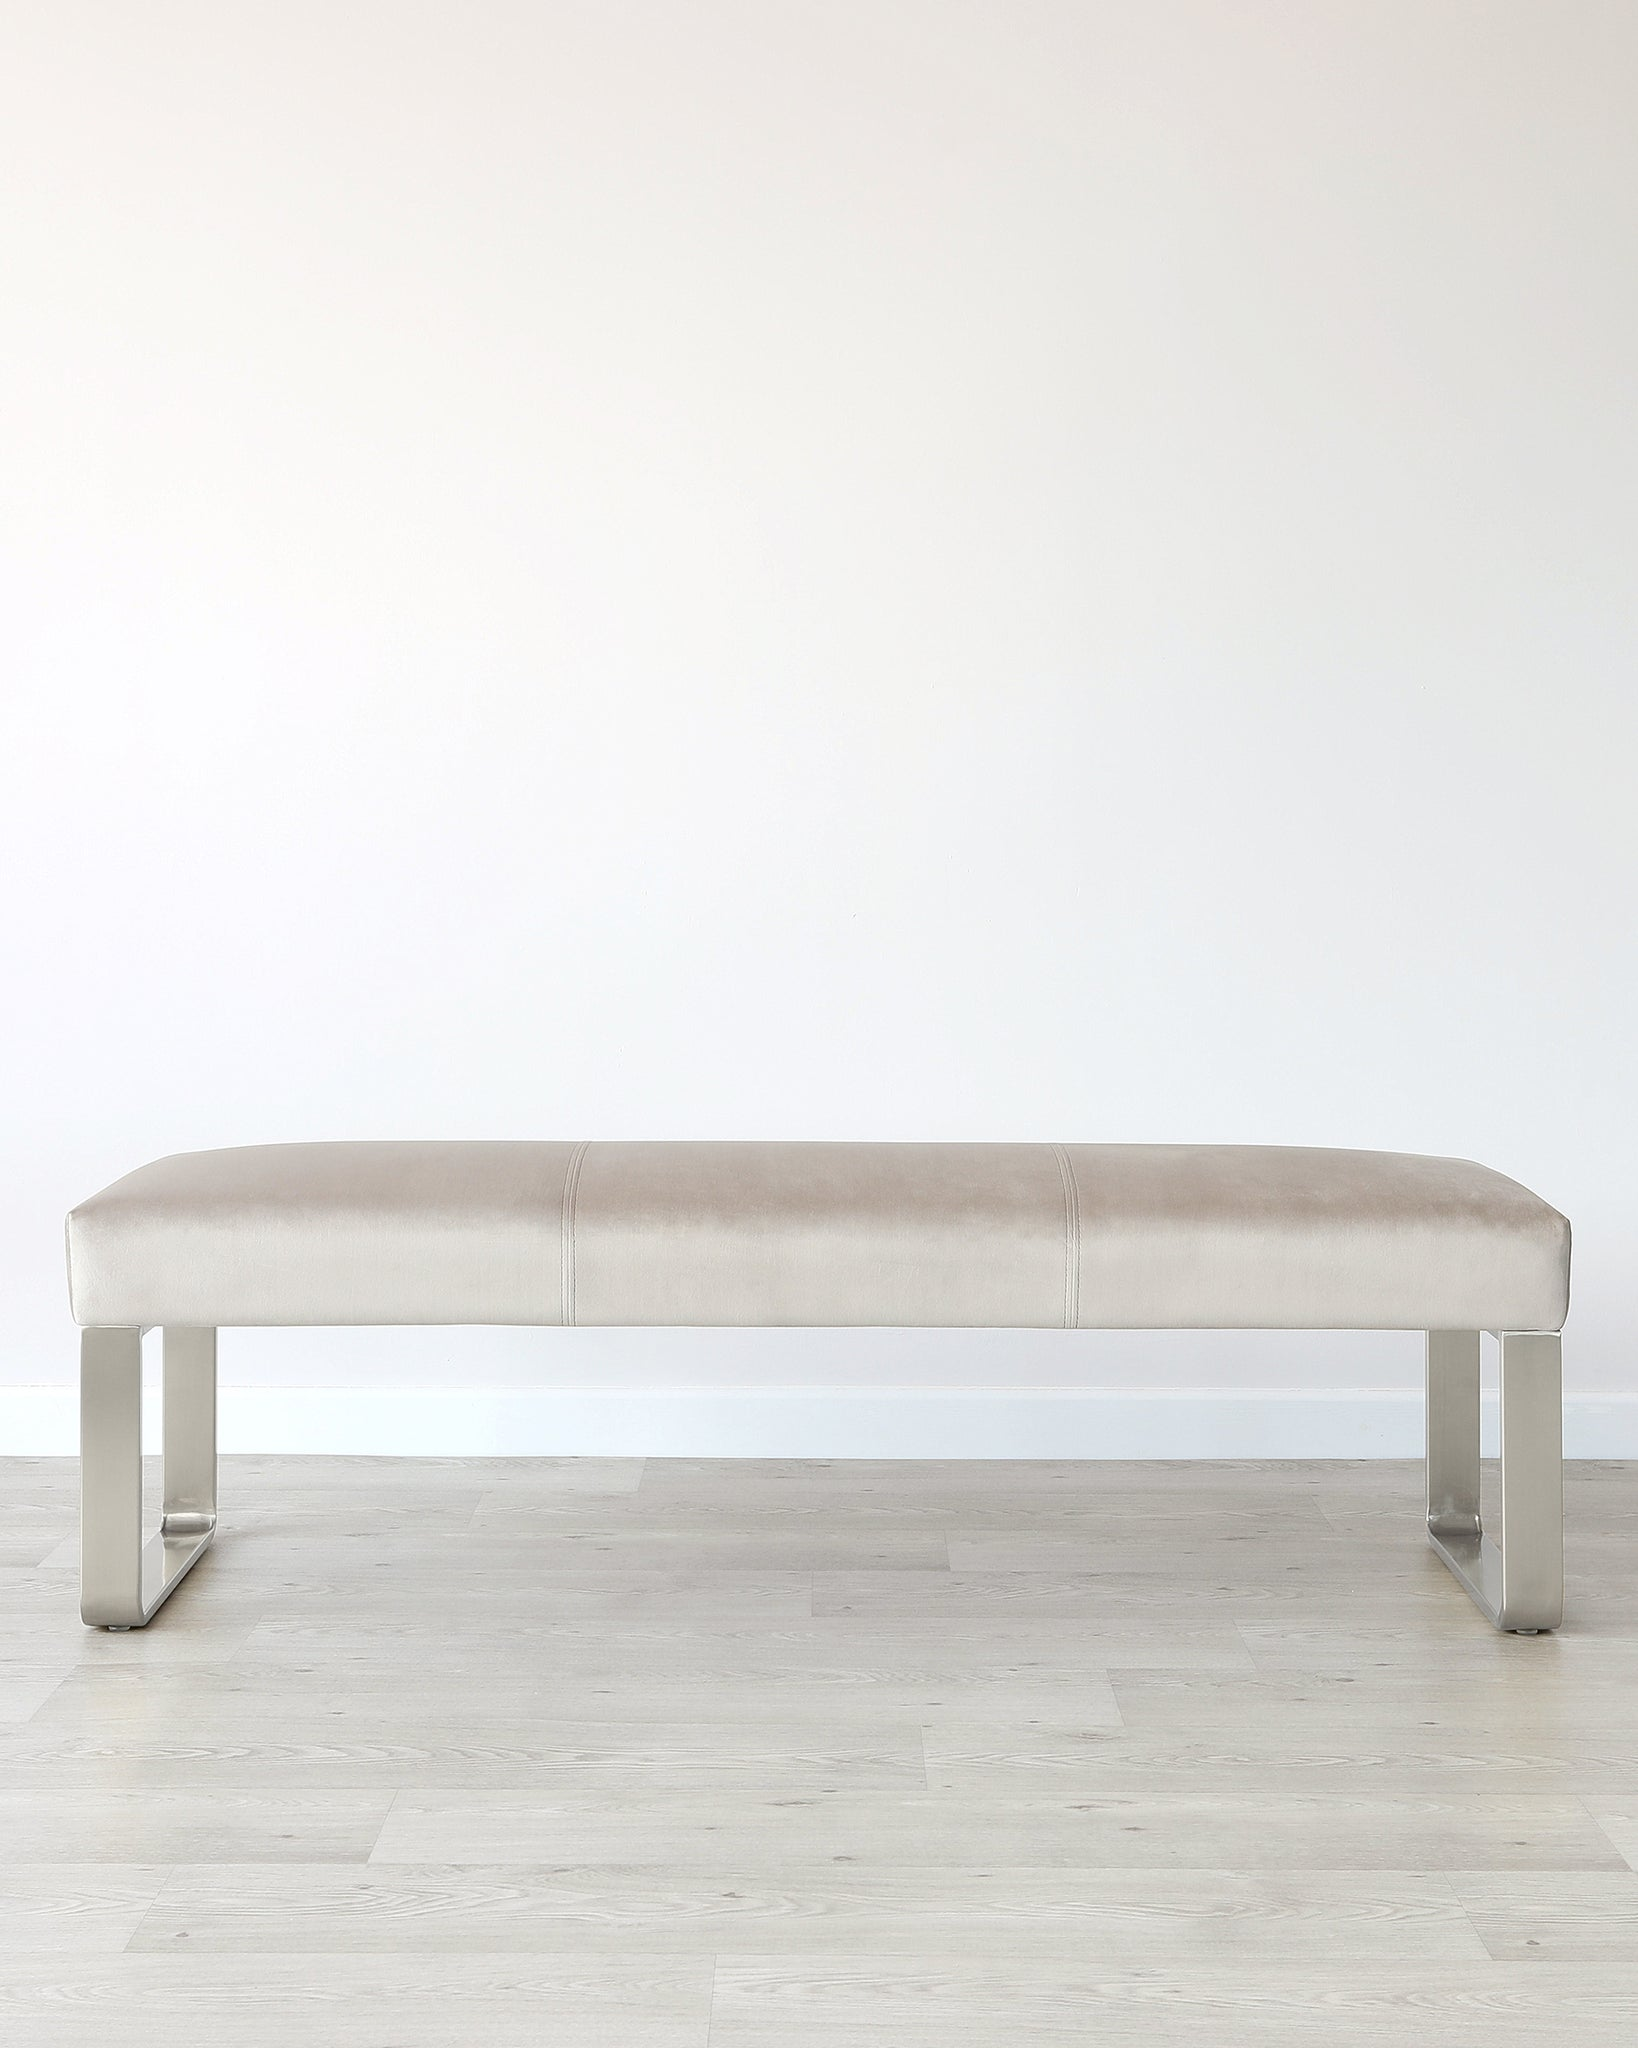 Ophelia 3 Seater Champagne & Stainless-steel-velvet Bench Without Backrest